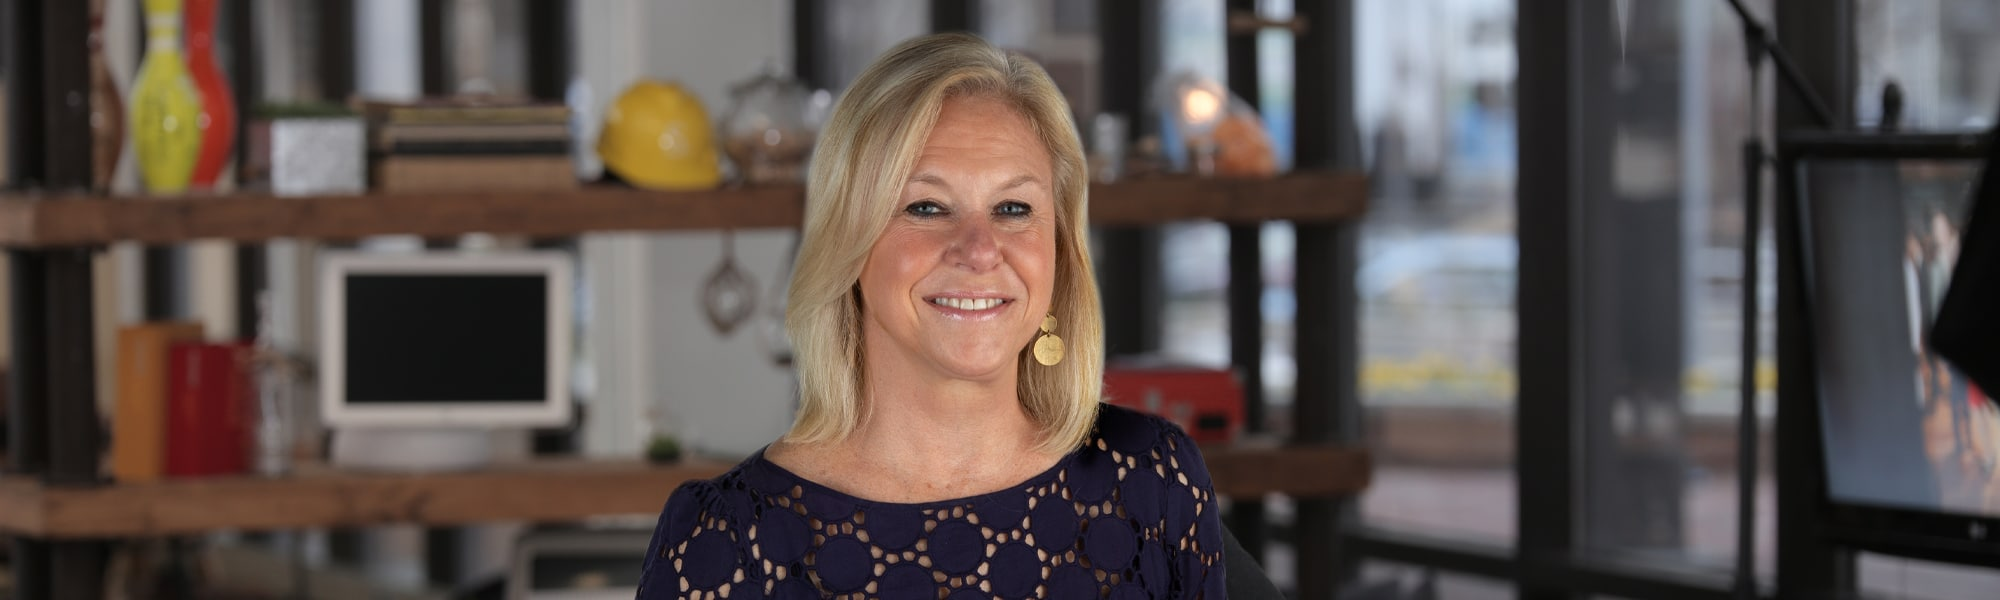 Julie Chase Joins Streetsense to Lead Firm's Growing Public Relations Practice